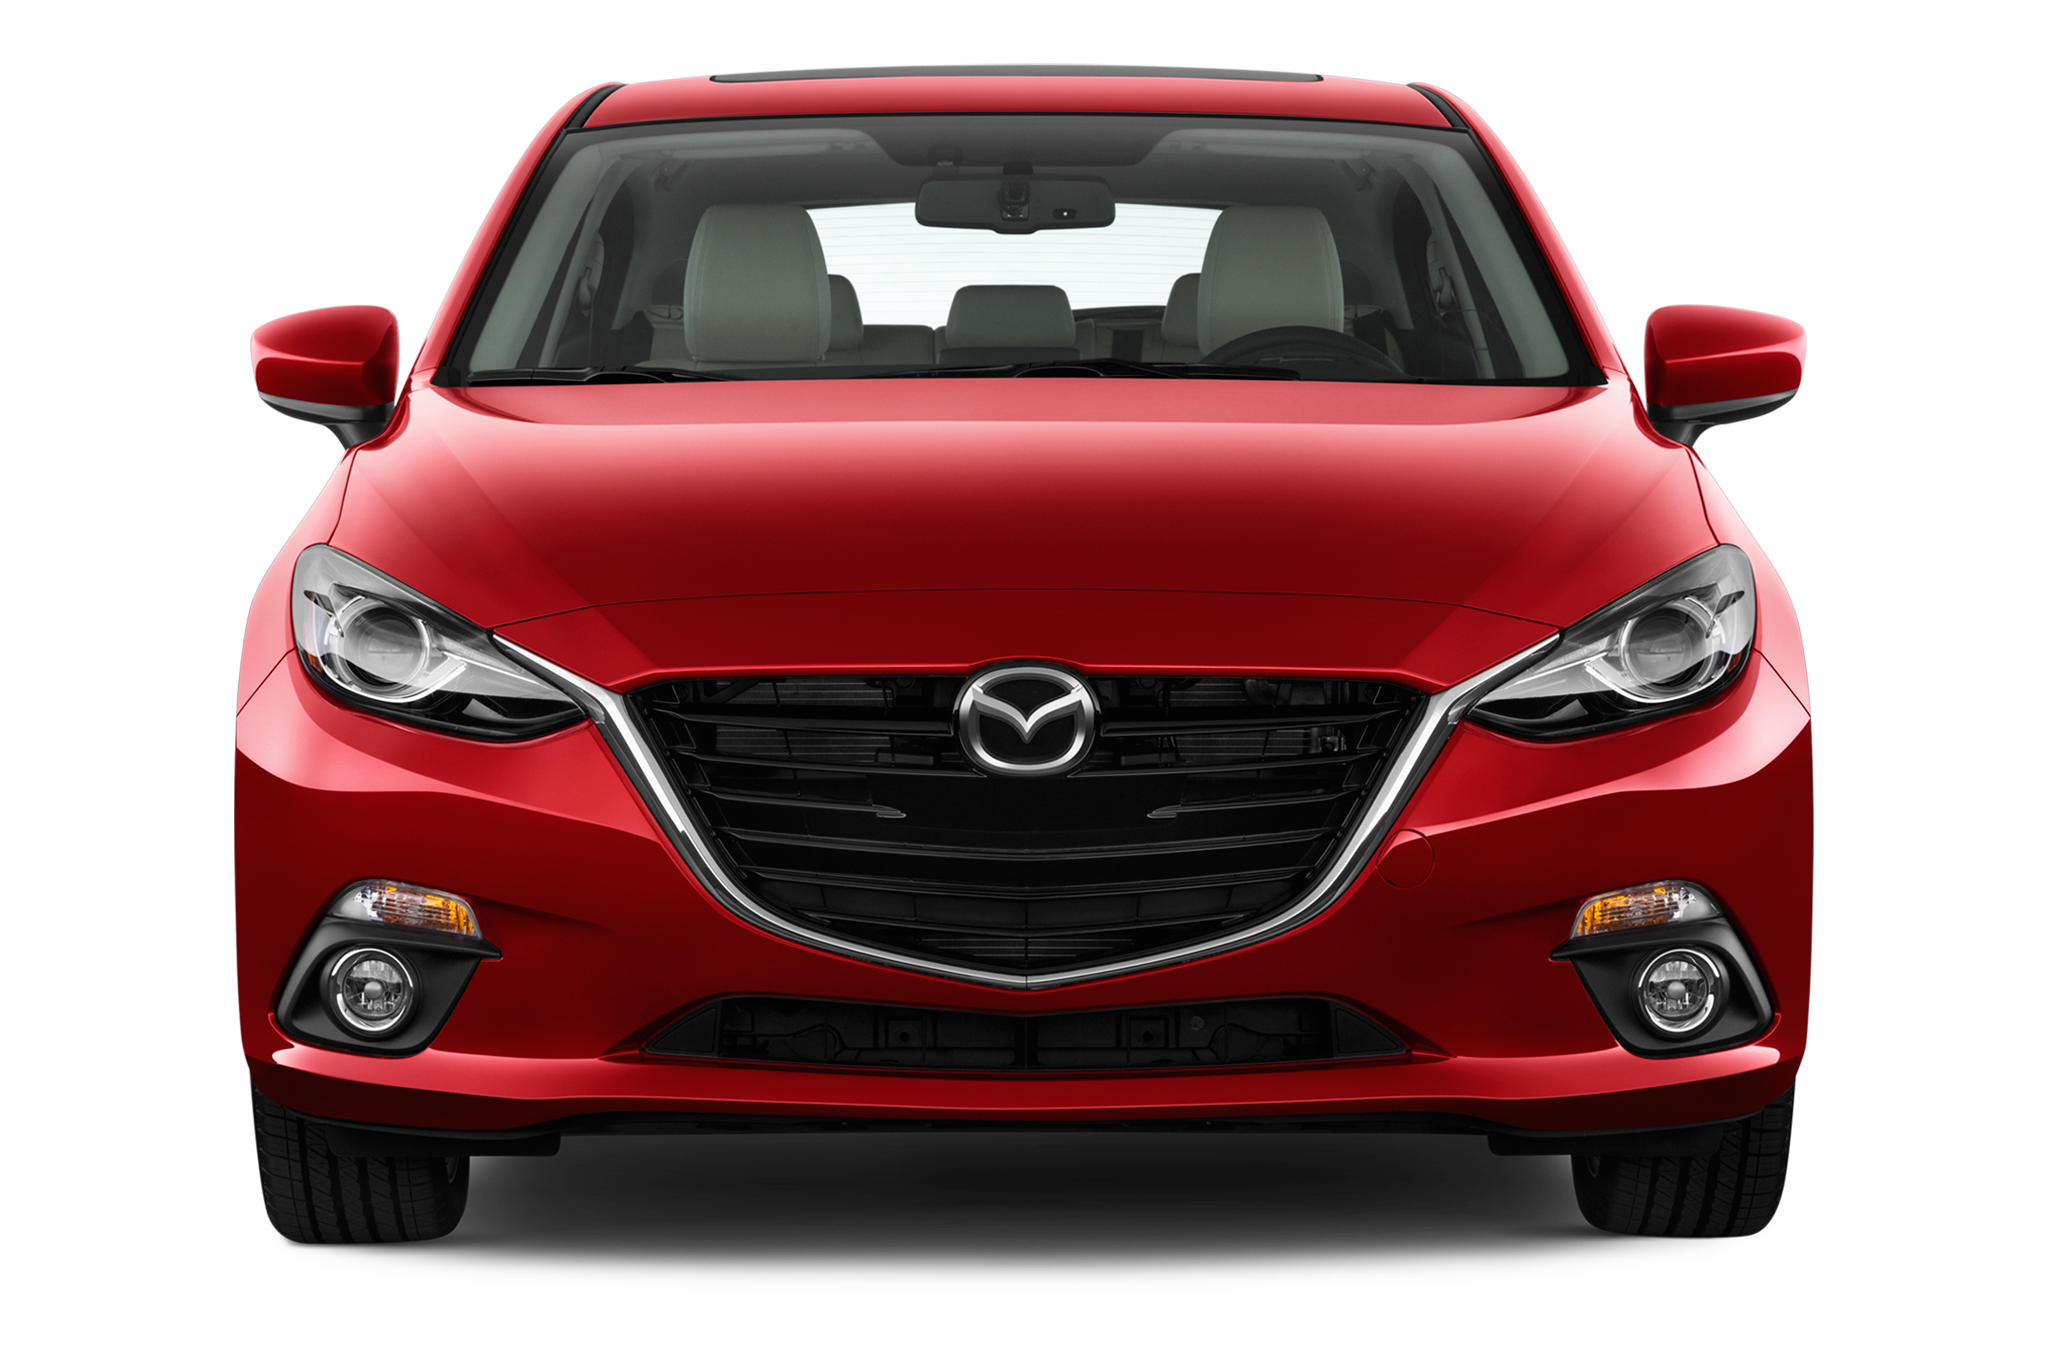 2016 mazda3 adds standard backup camera base sv trim discontinued. Black Bedroom Furniture Sets. Home Design Ideas